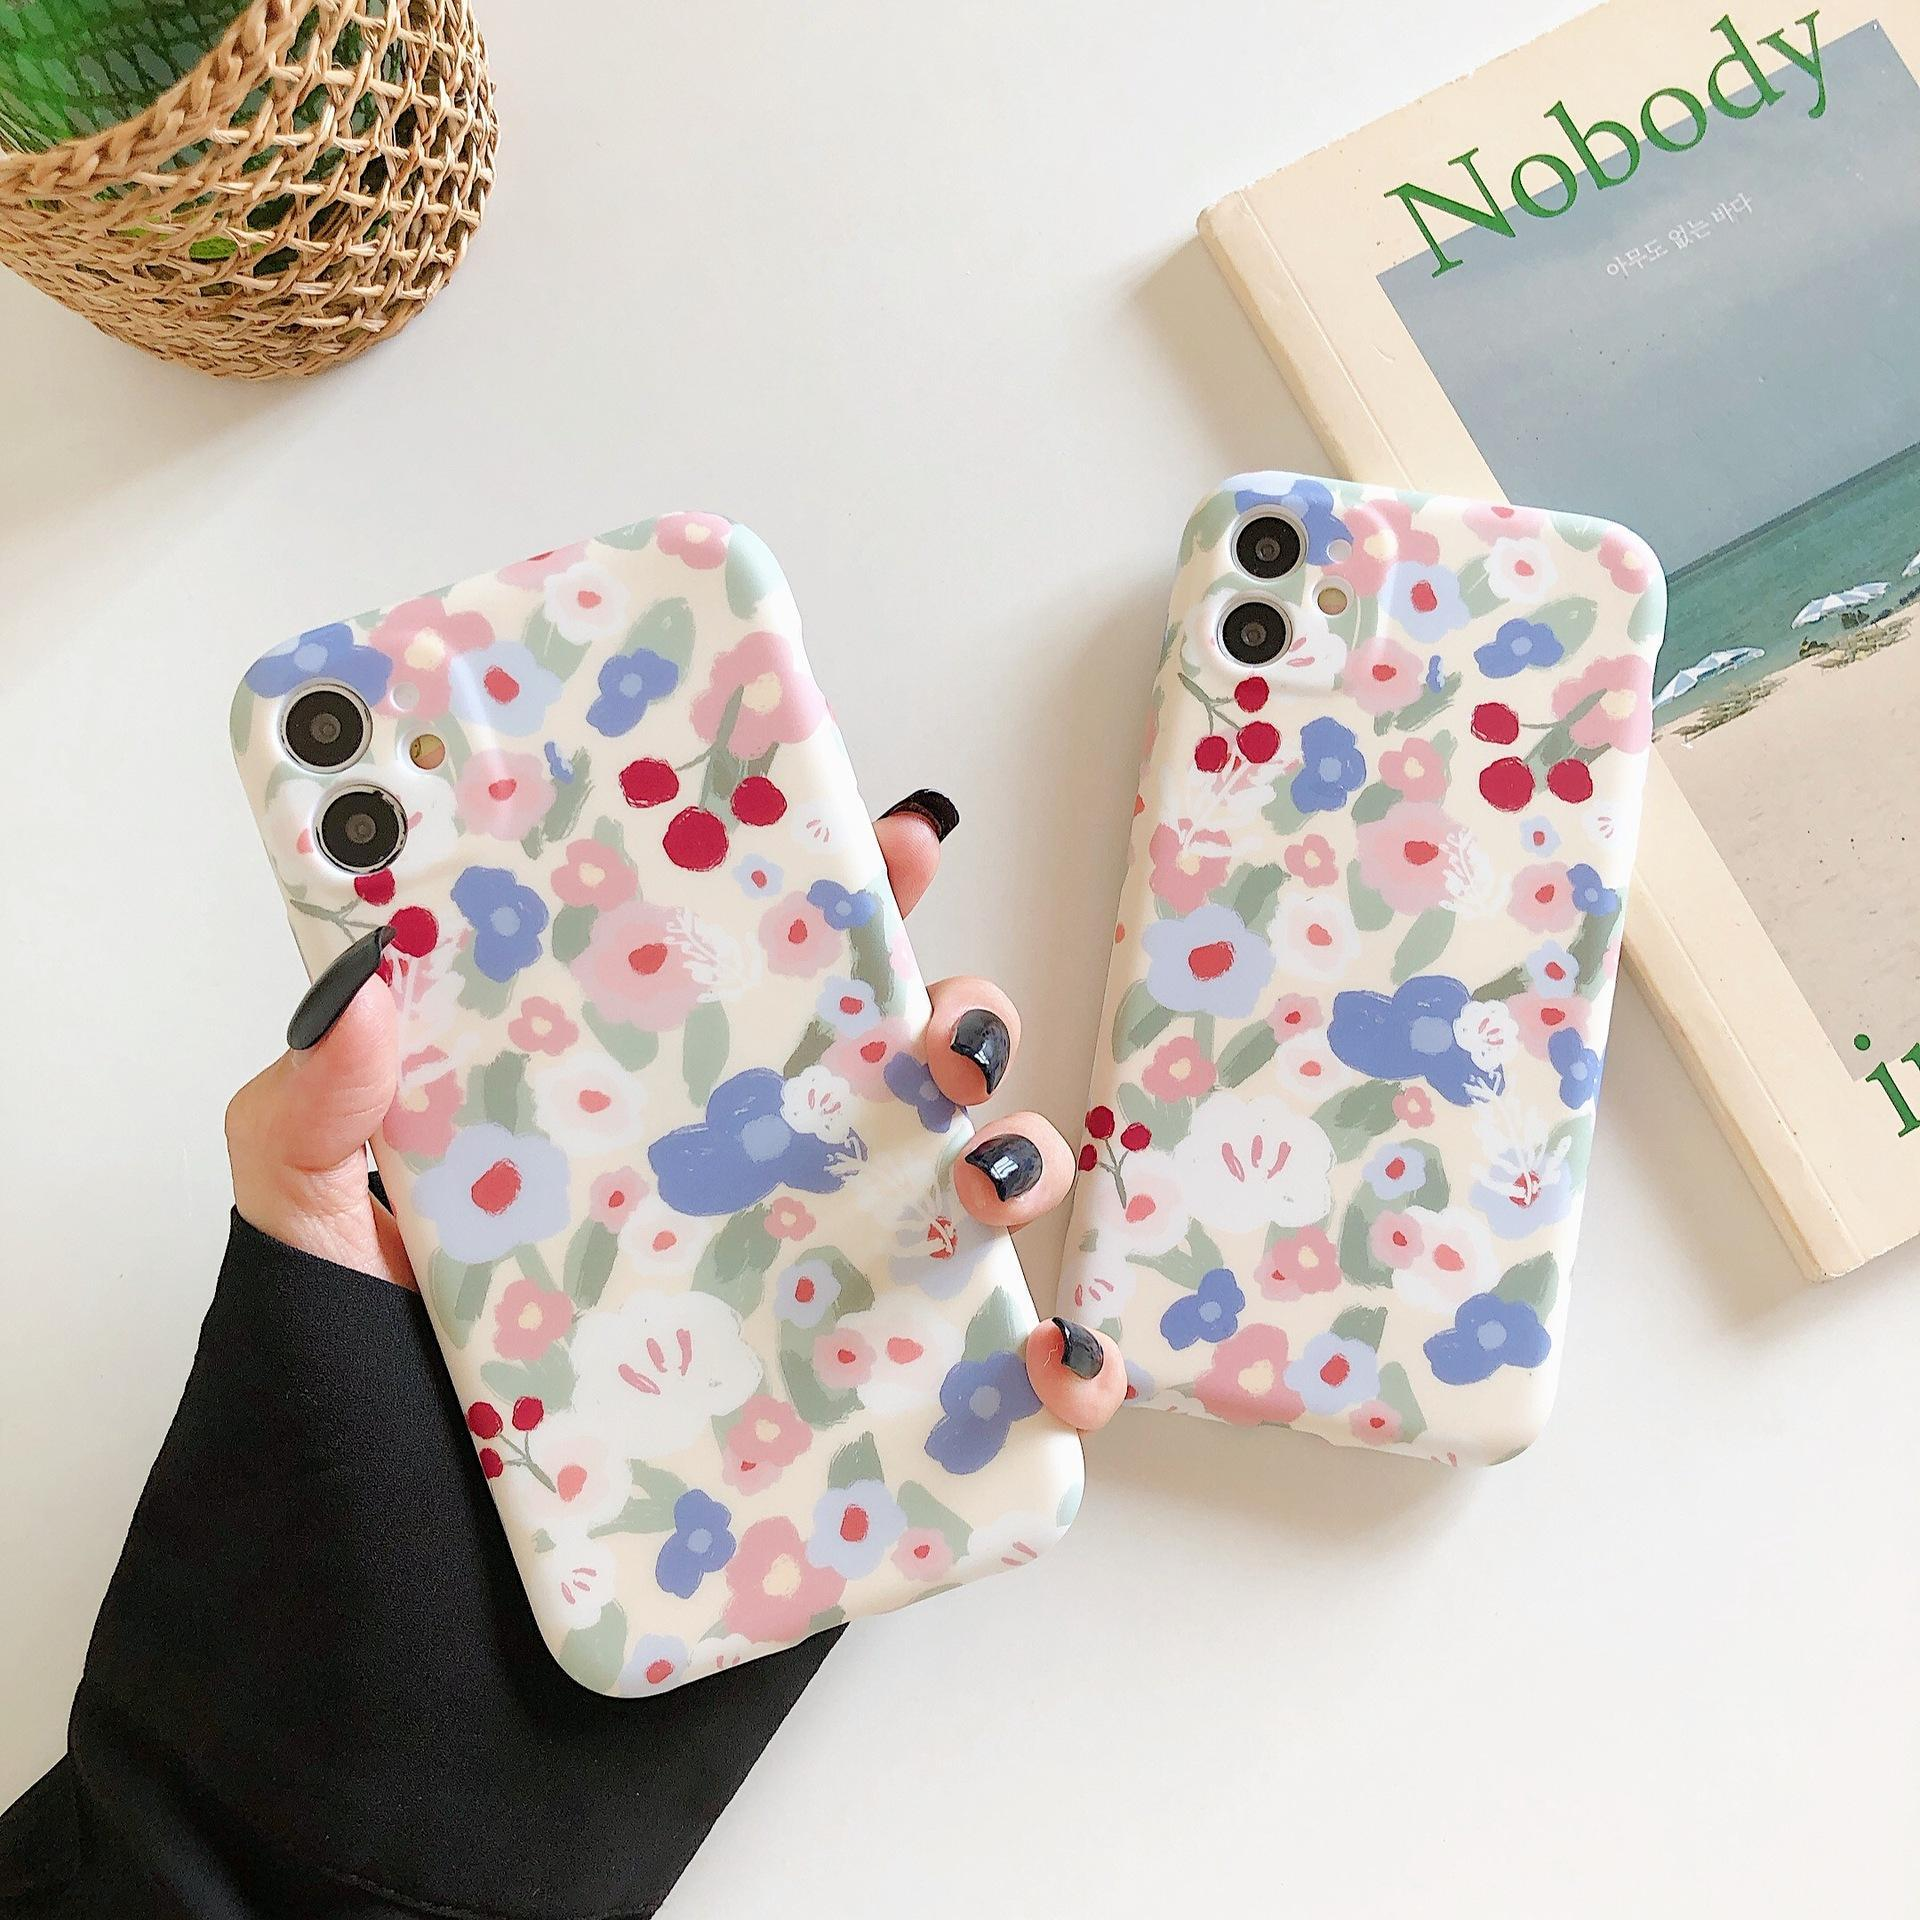 Cartoon Cute Cherry Phone Cases for IPhone12 Pro Max X XR XS 7 8 Plus Soft Matte Floral Shockproof Cover on 12 11 ProMAX MINI